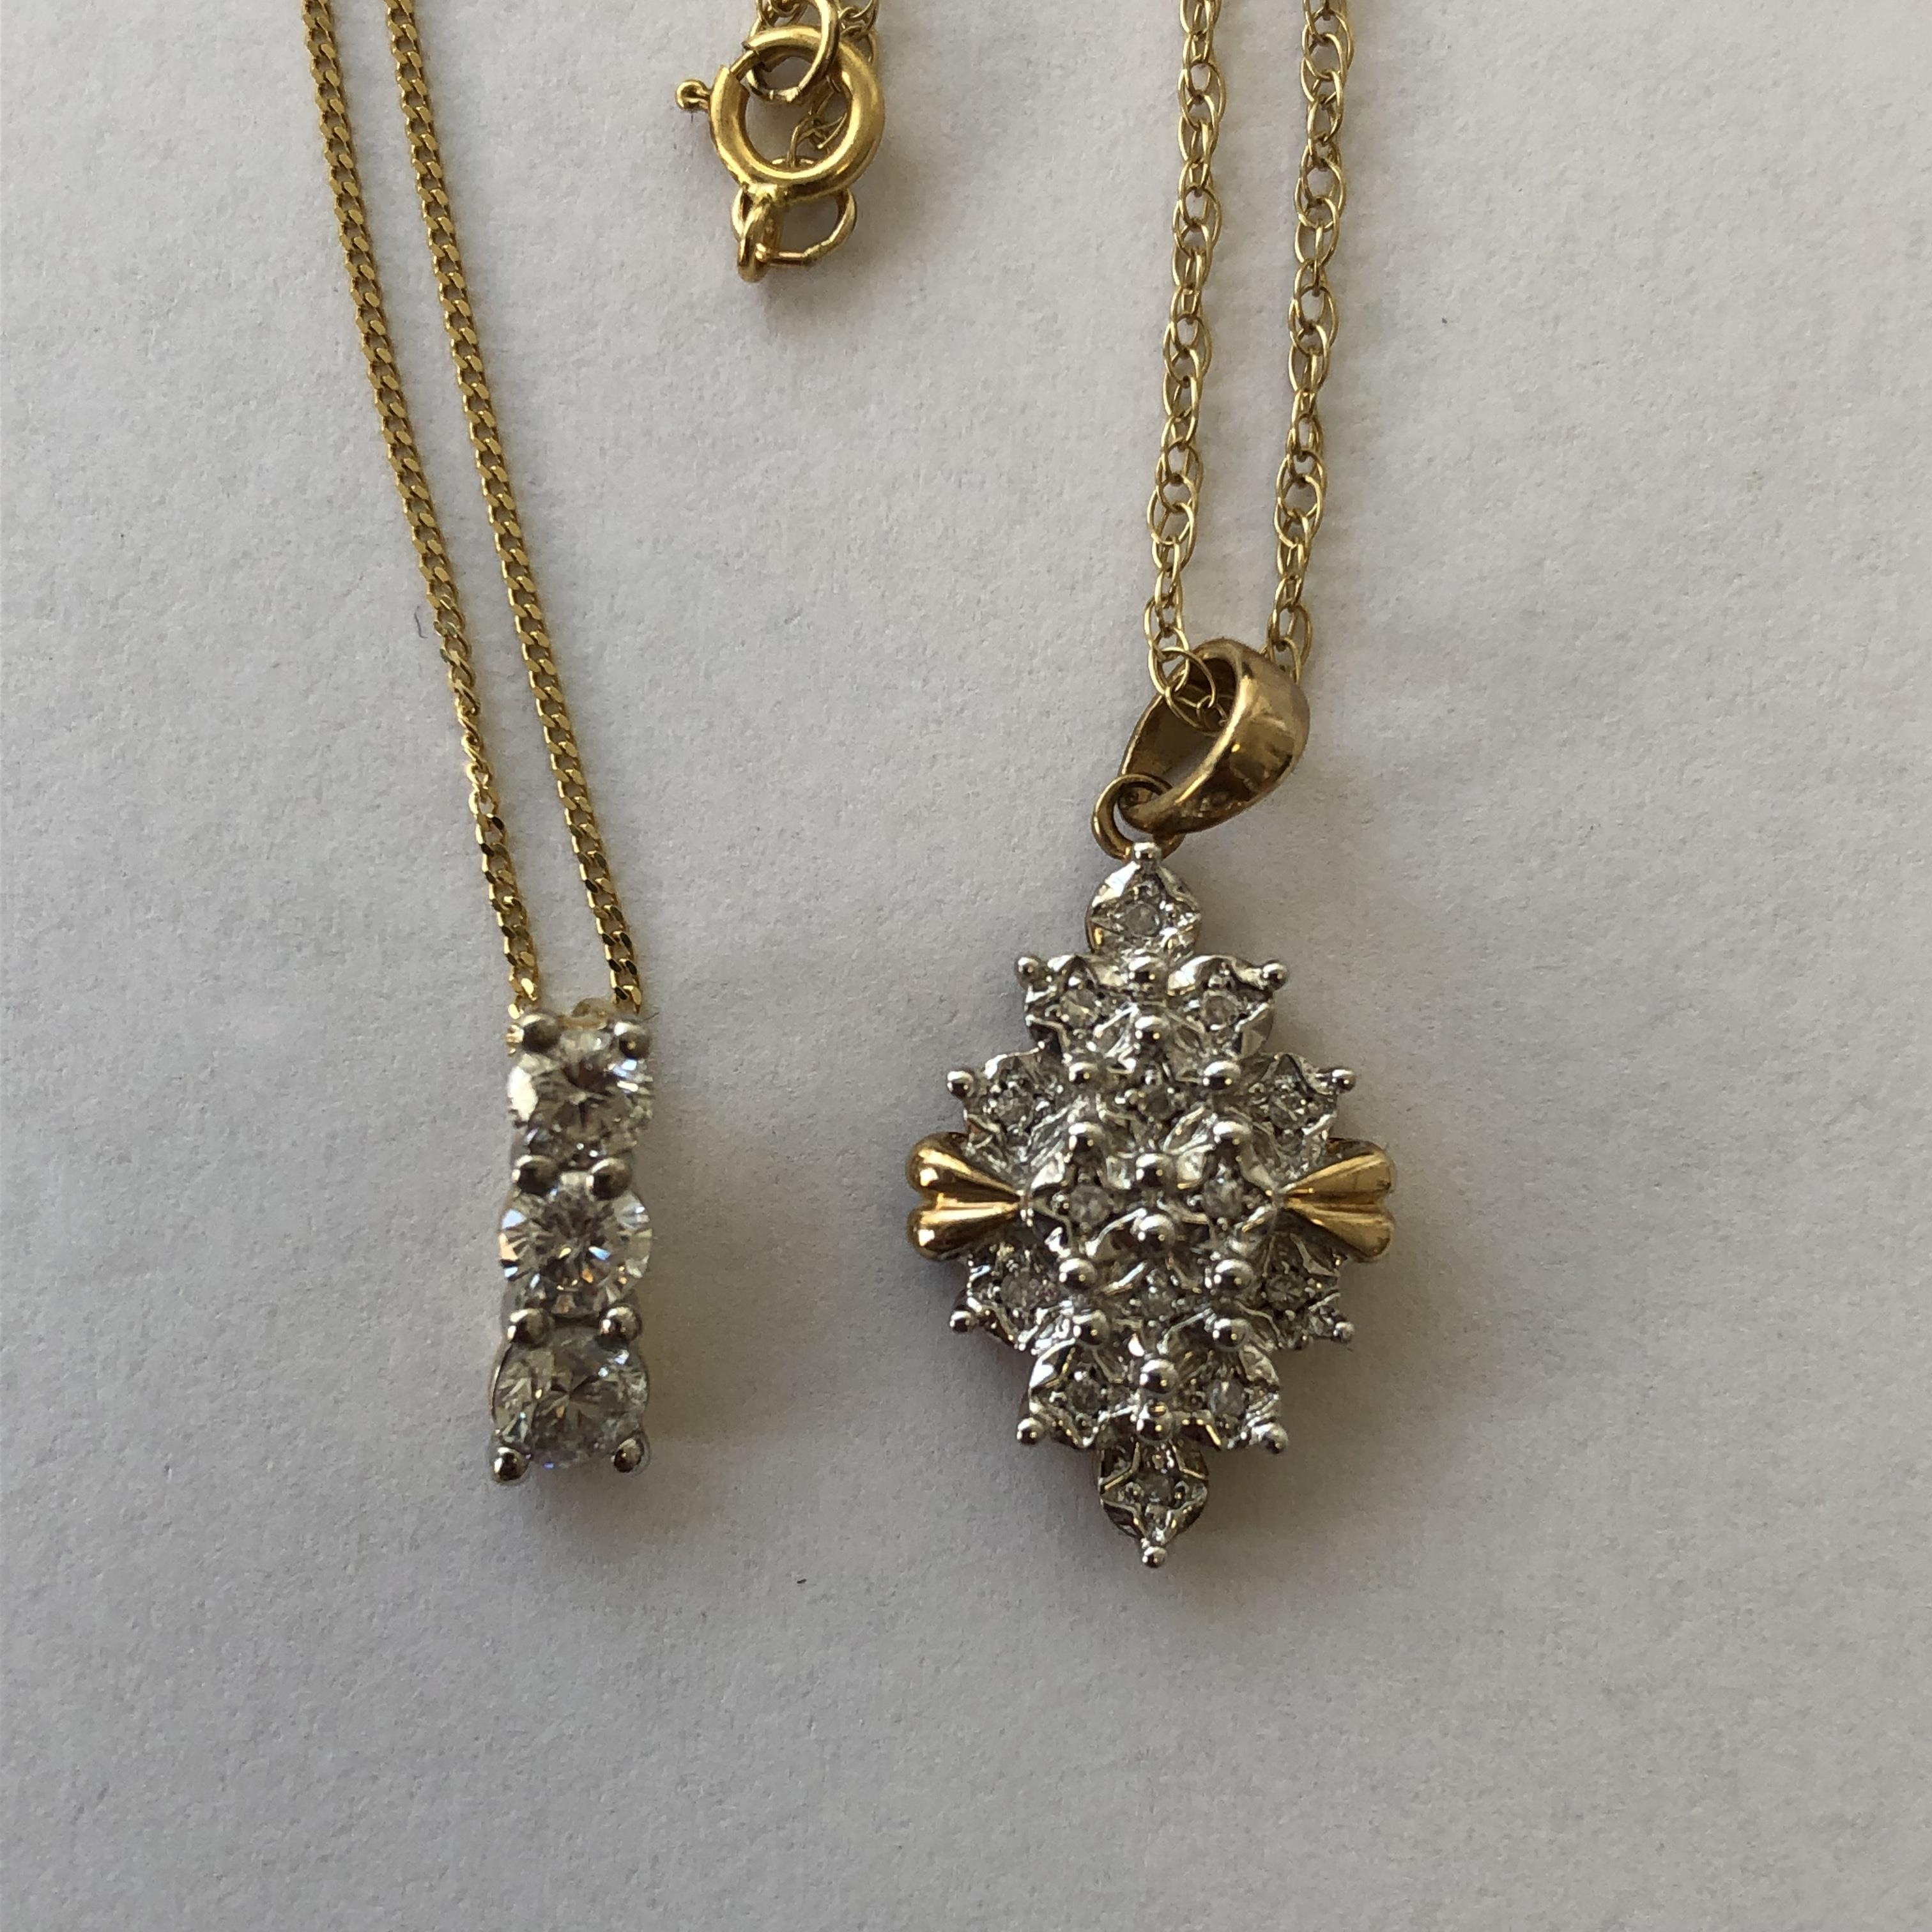 Lot 236 - 9CT GOLD AND CHIP DIAMOND PENDANT ON TRACE CHAIN AND A THREE STONE DIAMOND PENDANT ON TRACE CHAIN 4.